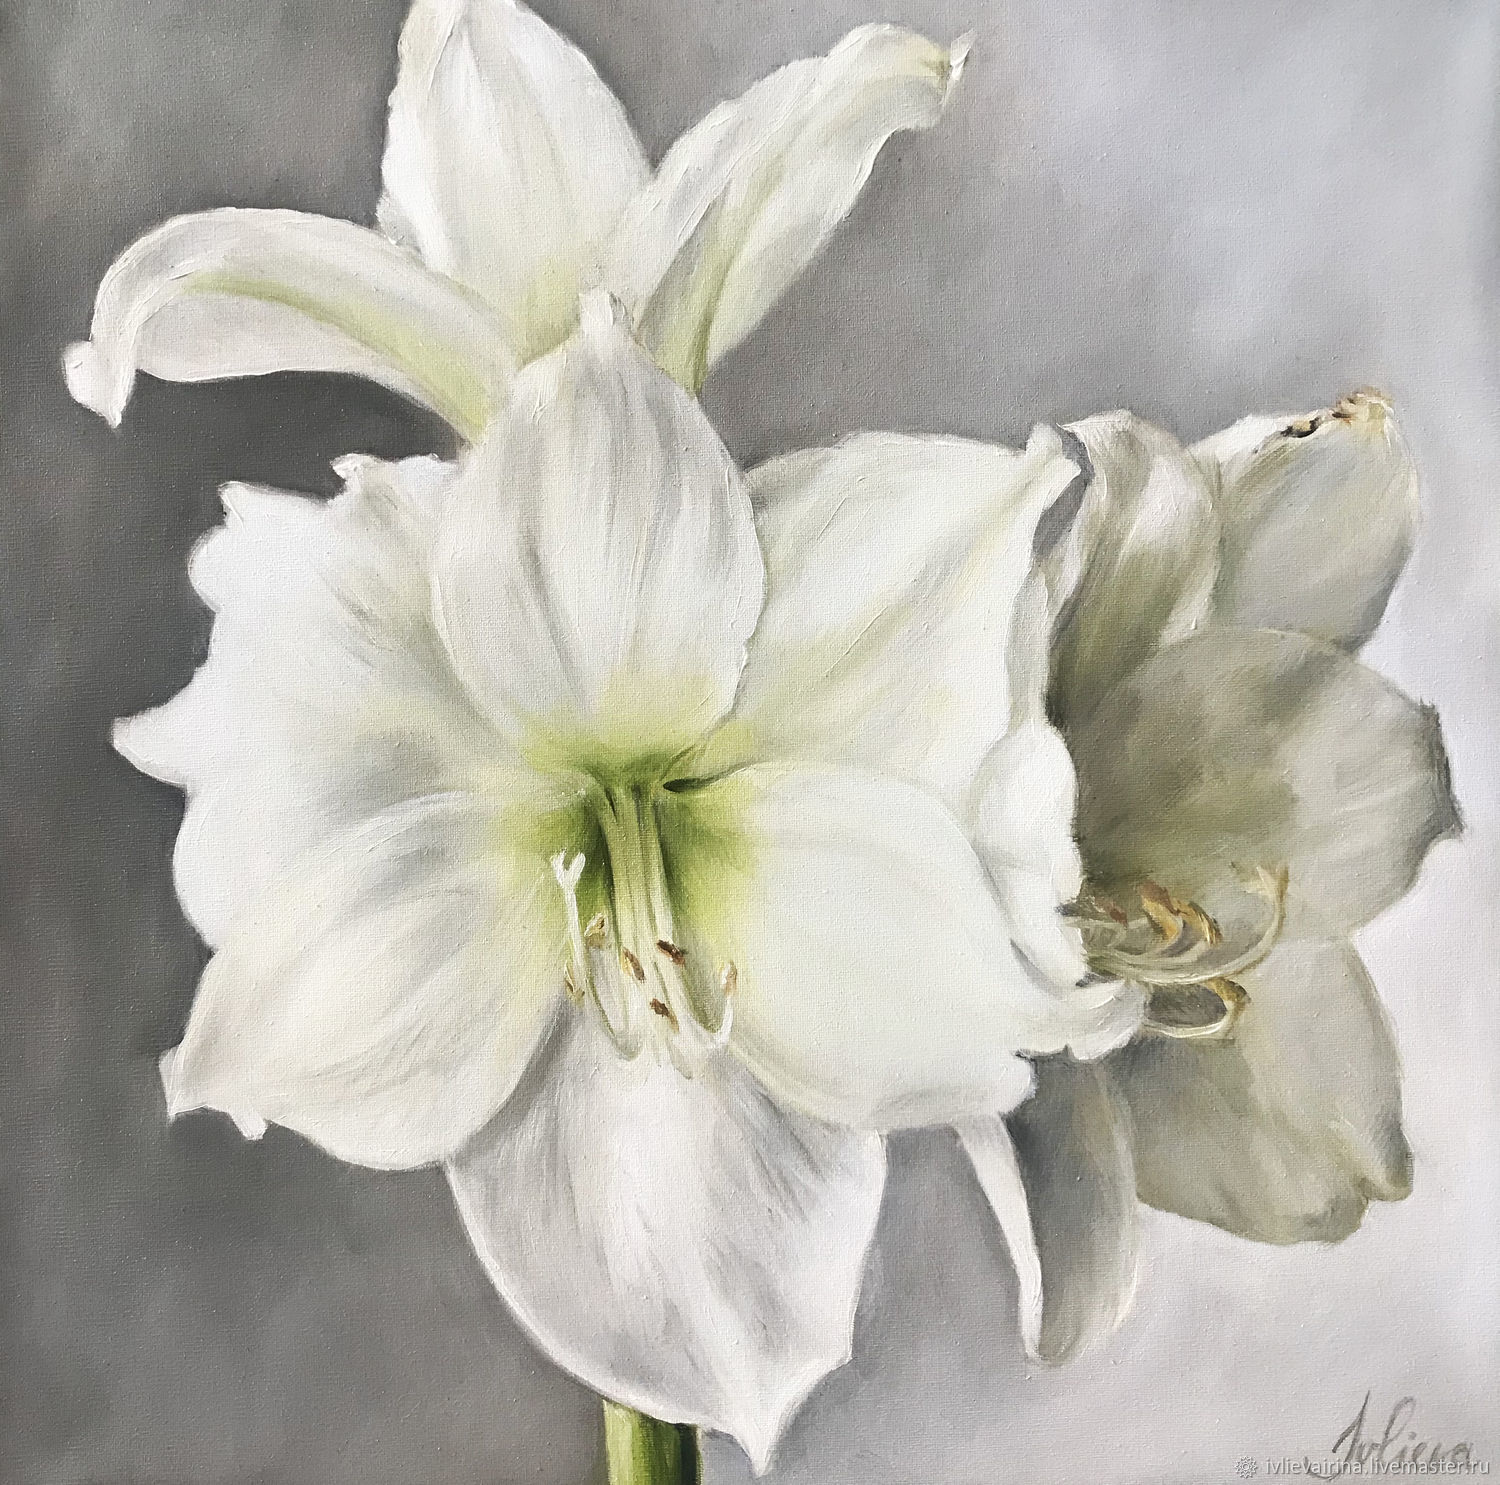 Oil painting with white flowers 'Amaryllis' 30*30 cm, Pictures, Moscow,  Фото №1